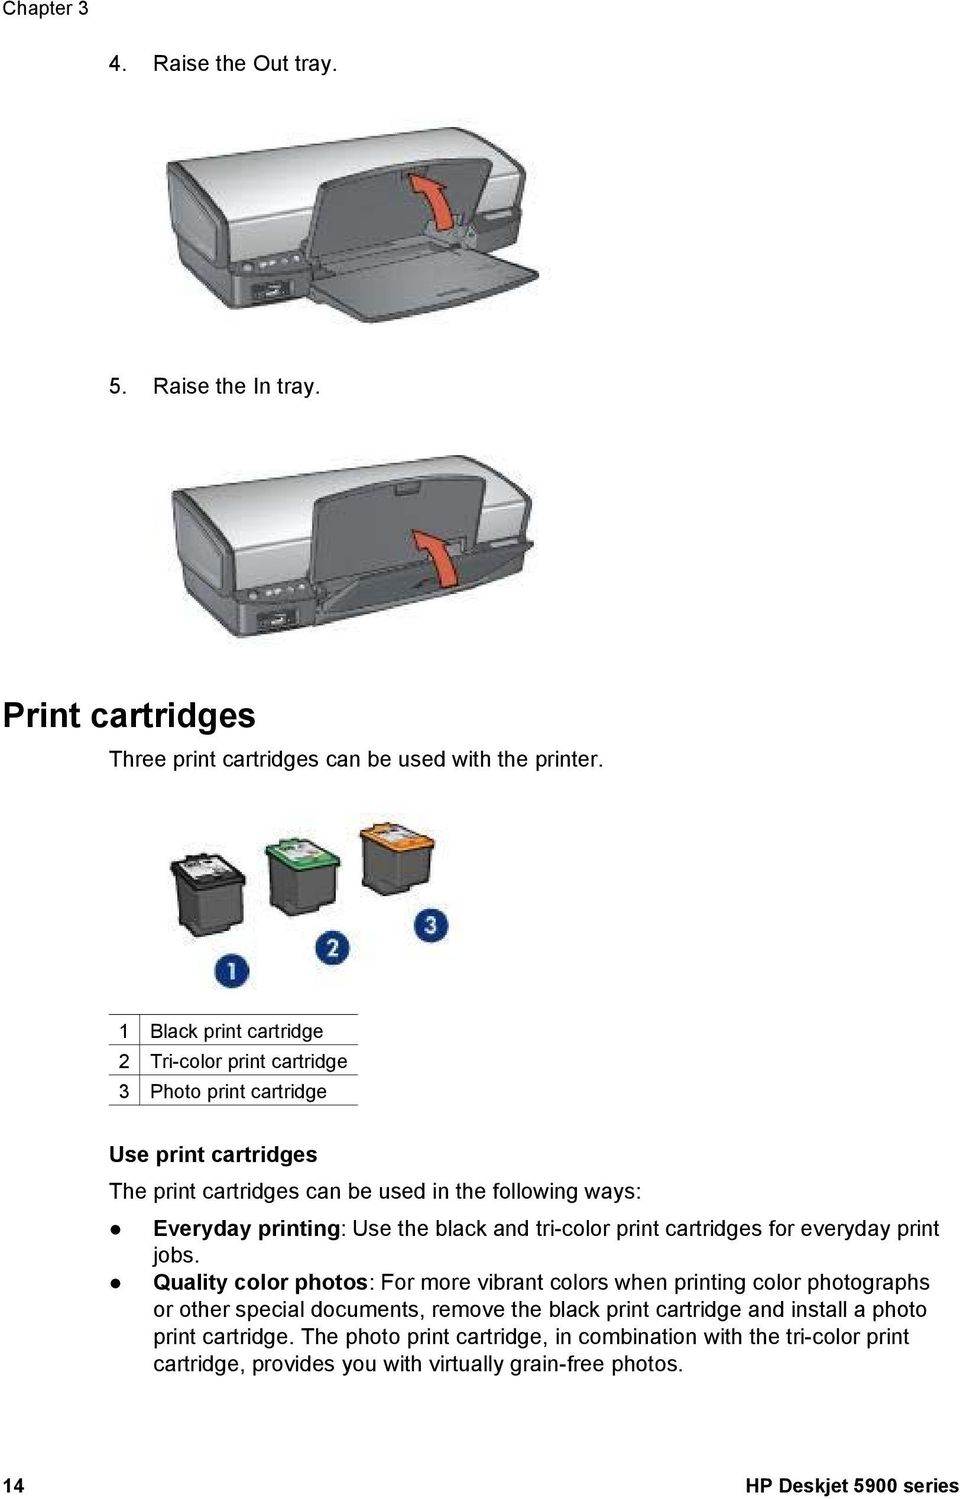 Use the black and tri-color print cartridges for everyday print jobs.